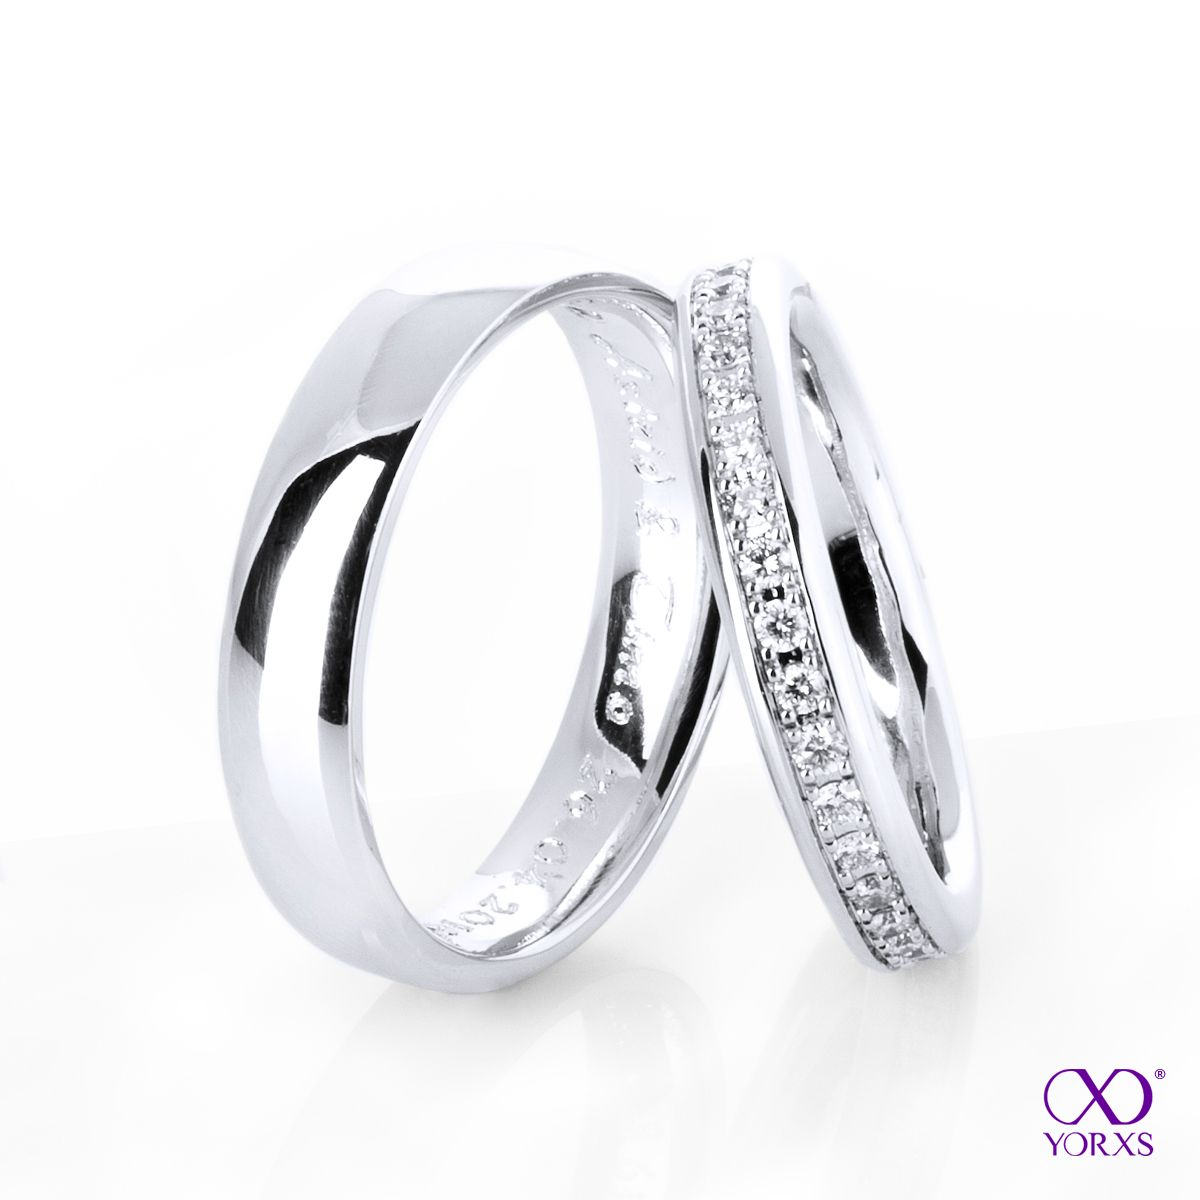 Beautiful Wedding Rings For Your Dream Wedding On Yorxs #yorxs #